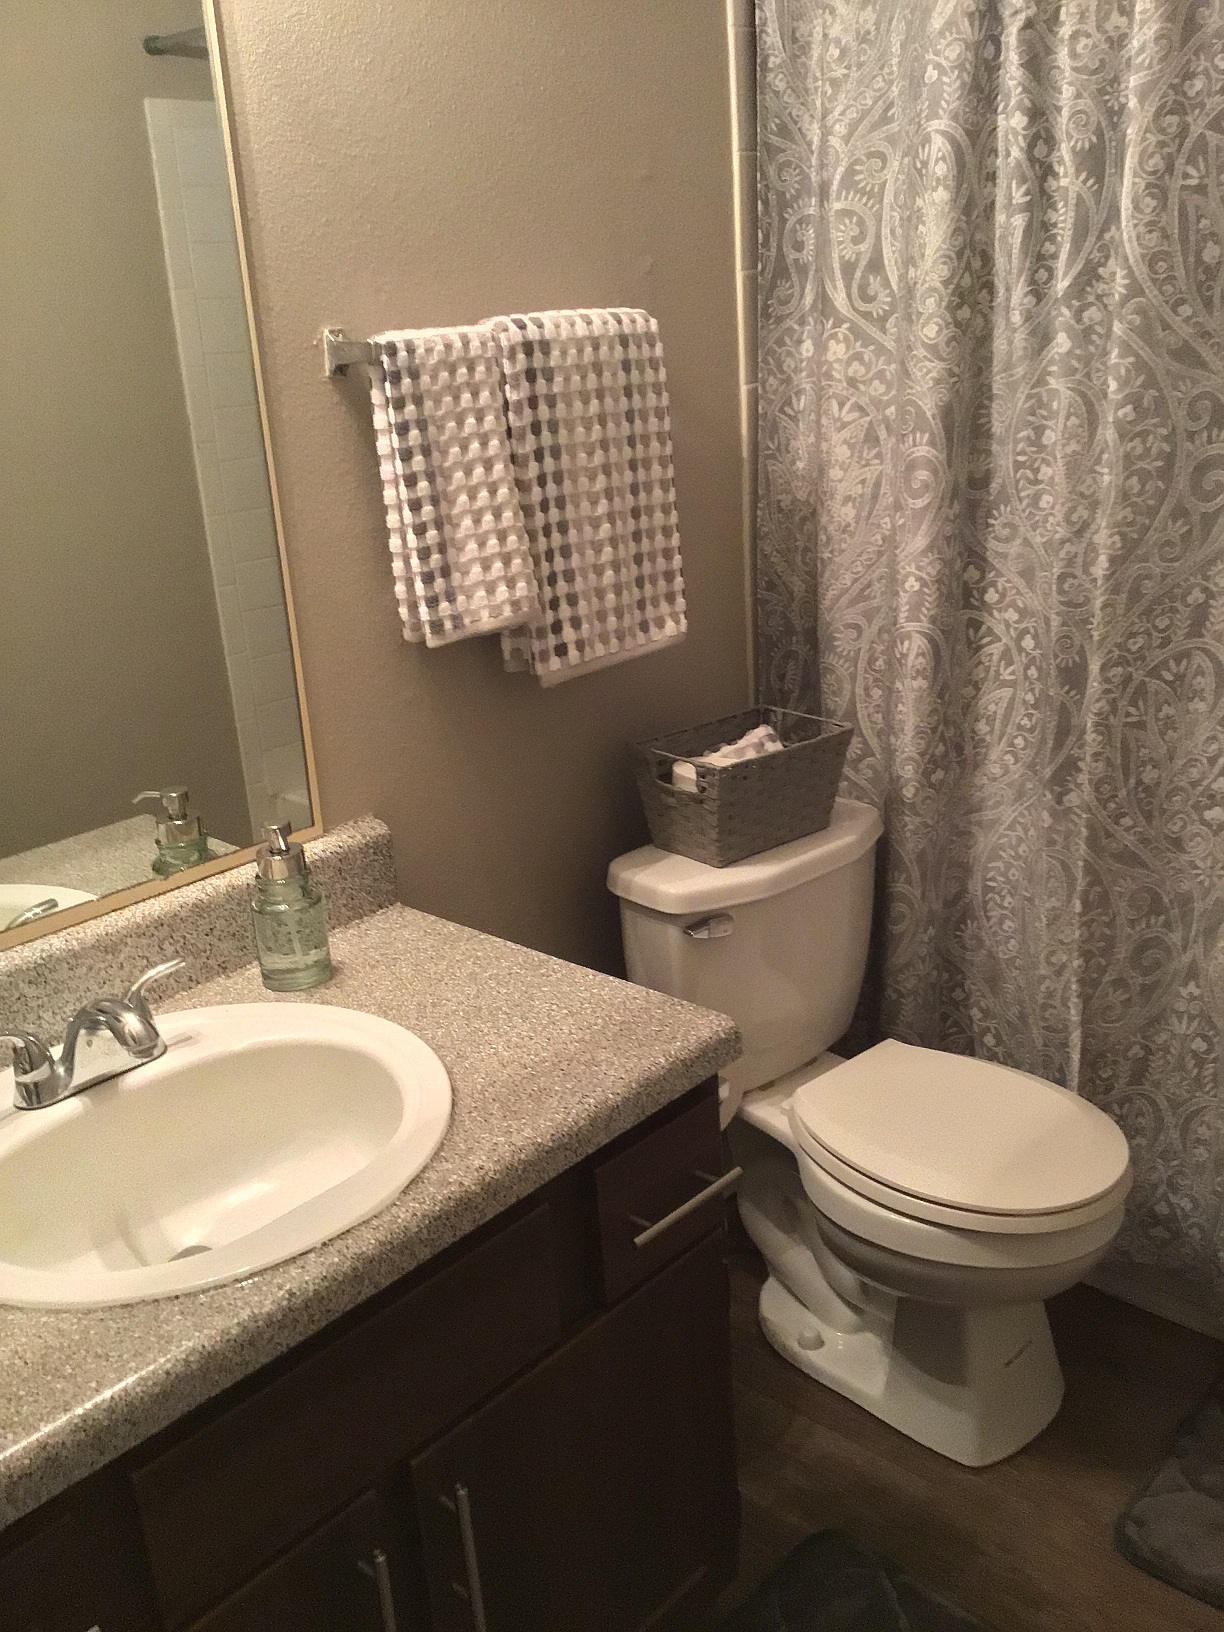 Bathroom at Rustic Woods Apartments in Tulsa, Oklahoma